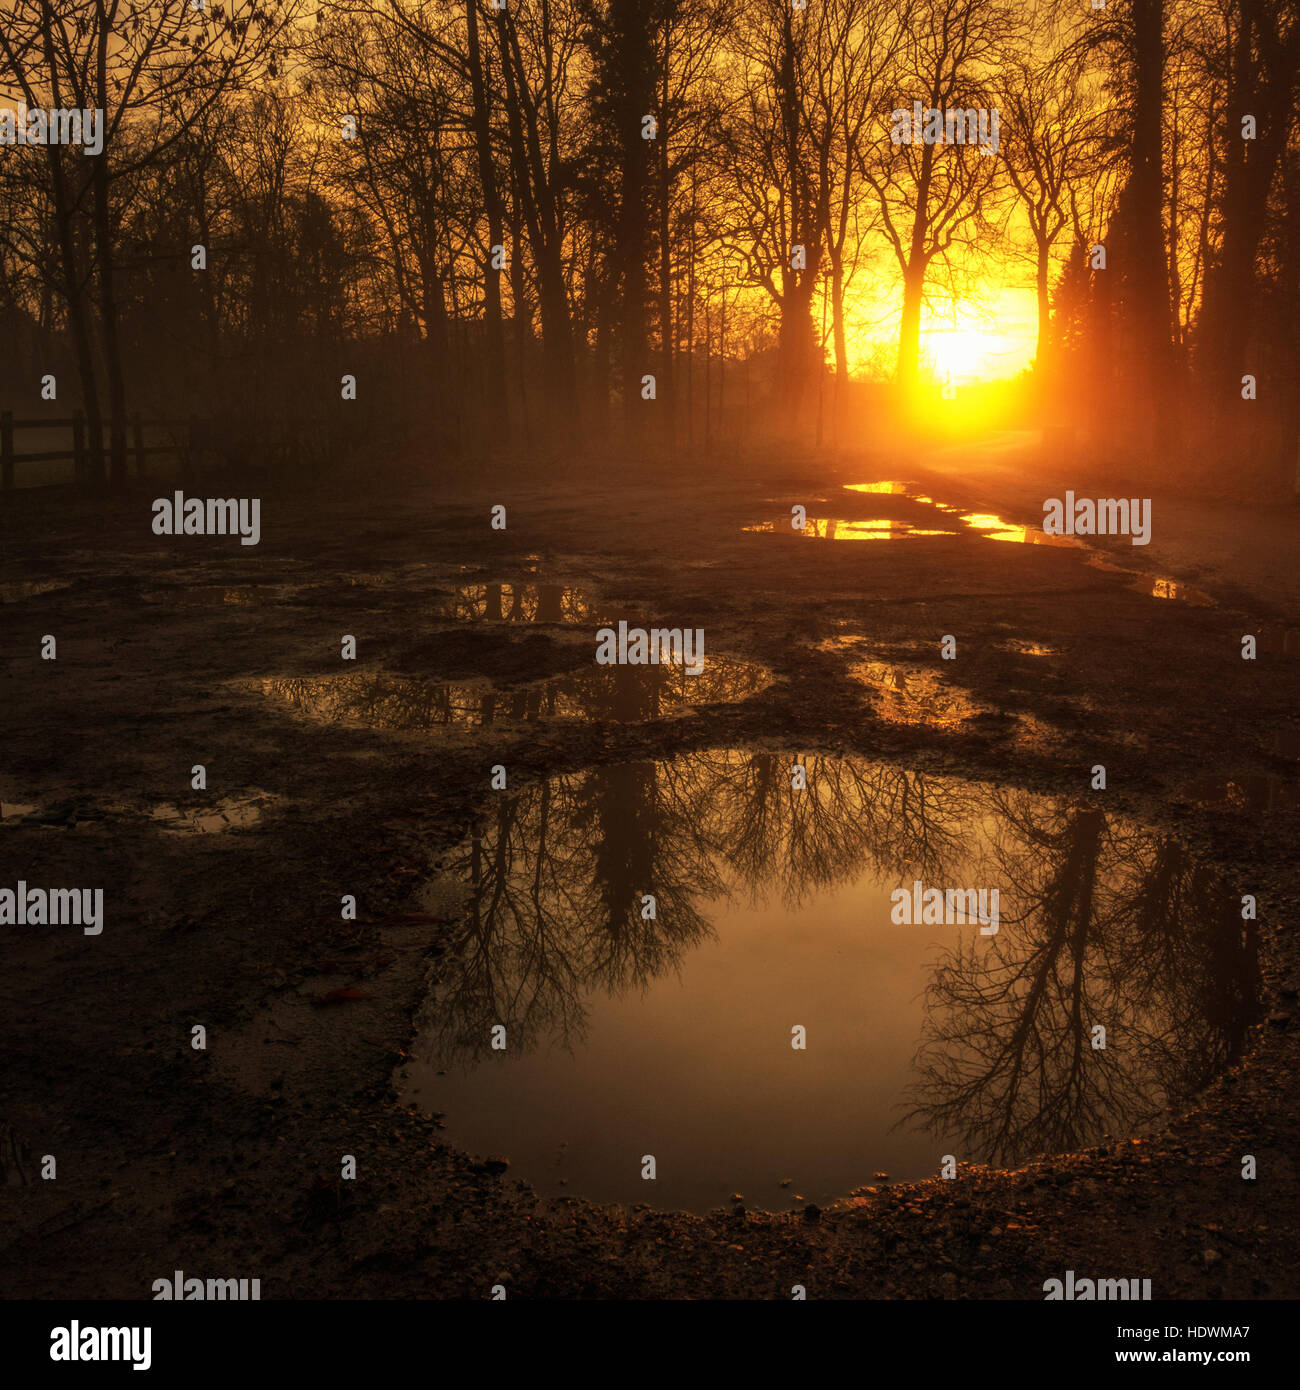 Misty glowing dawn sun on a country path with puddles reflecting orange glowing light and trees, Ilkley, Yorkshire, - Stock Image